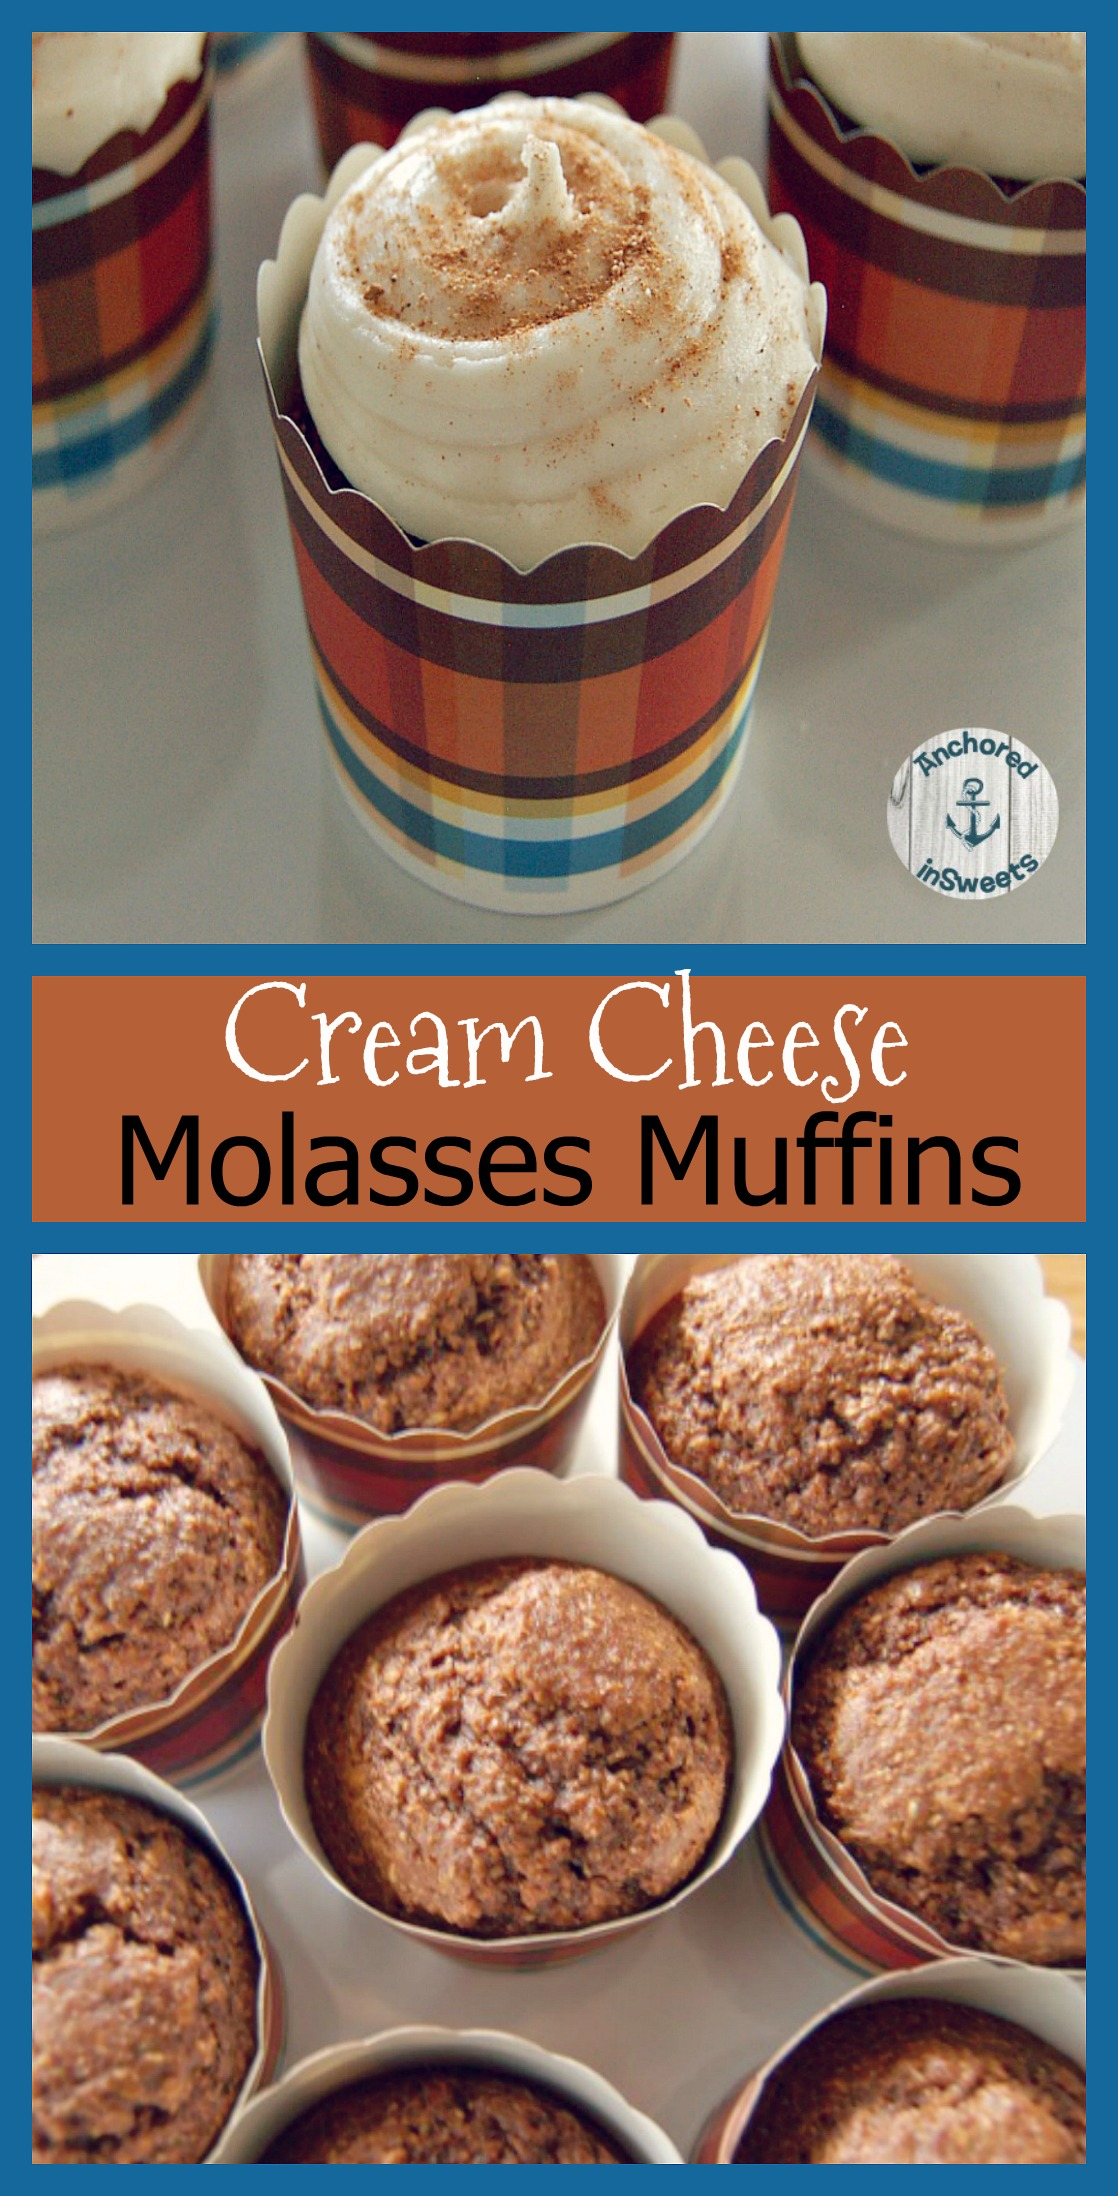 Cream Cheese Molasses Muffins